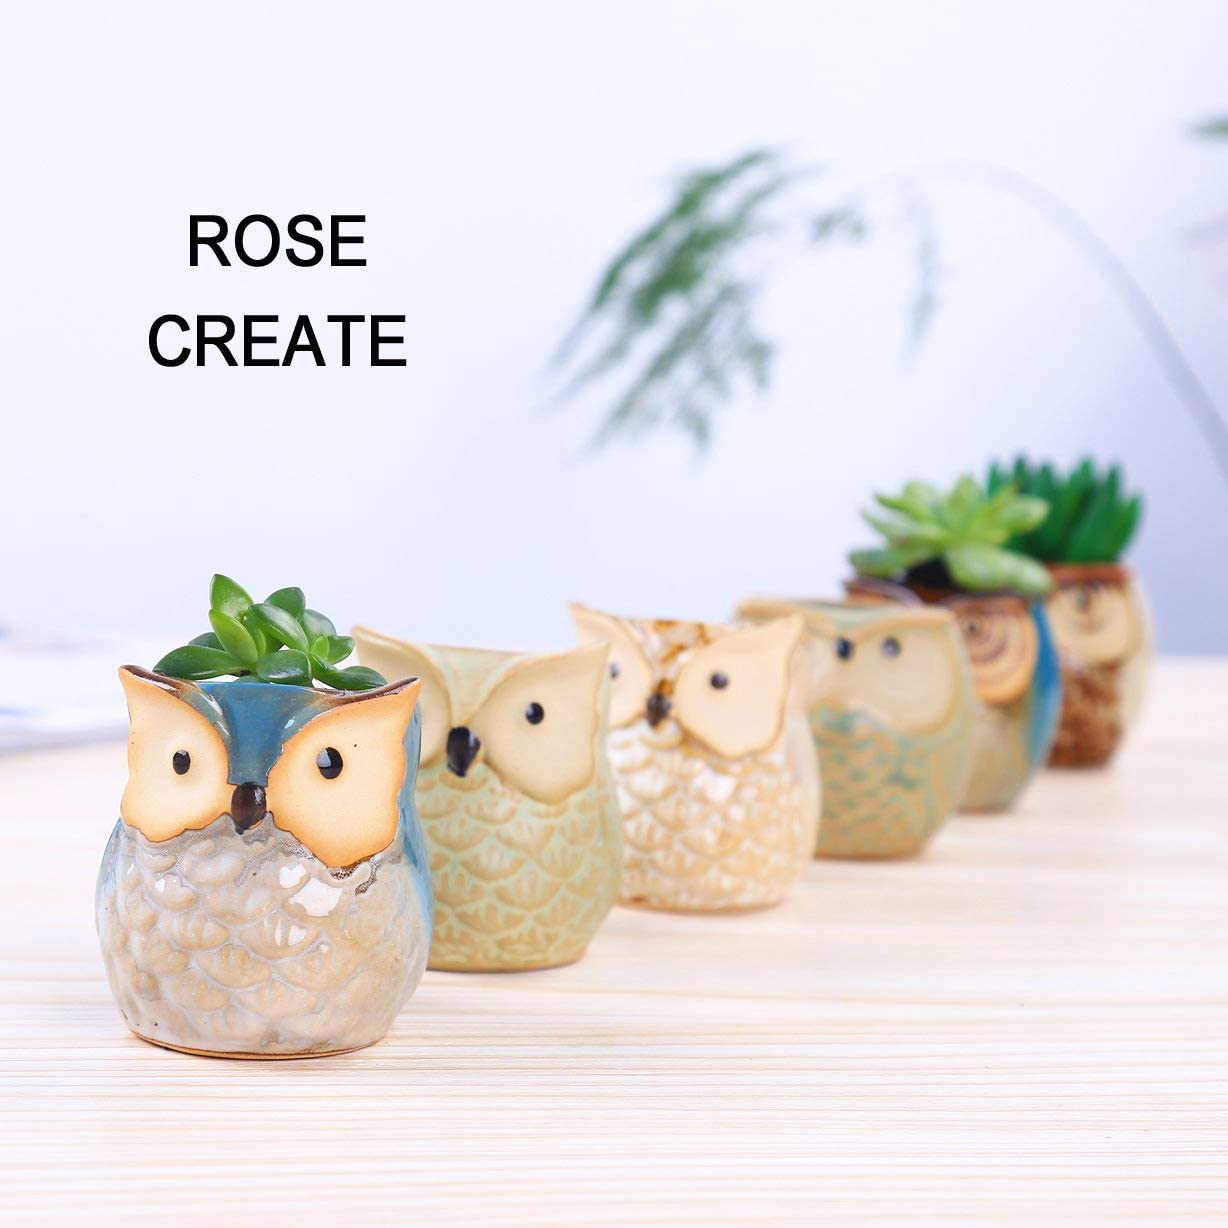 ROSE CREATE 6 Pcs 2.5 Inches Owl Pots, Little Ceramic Succulent Bonsai Pots with a Hole – Pack of 6